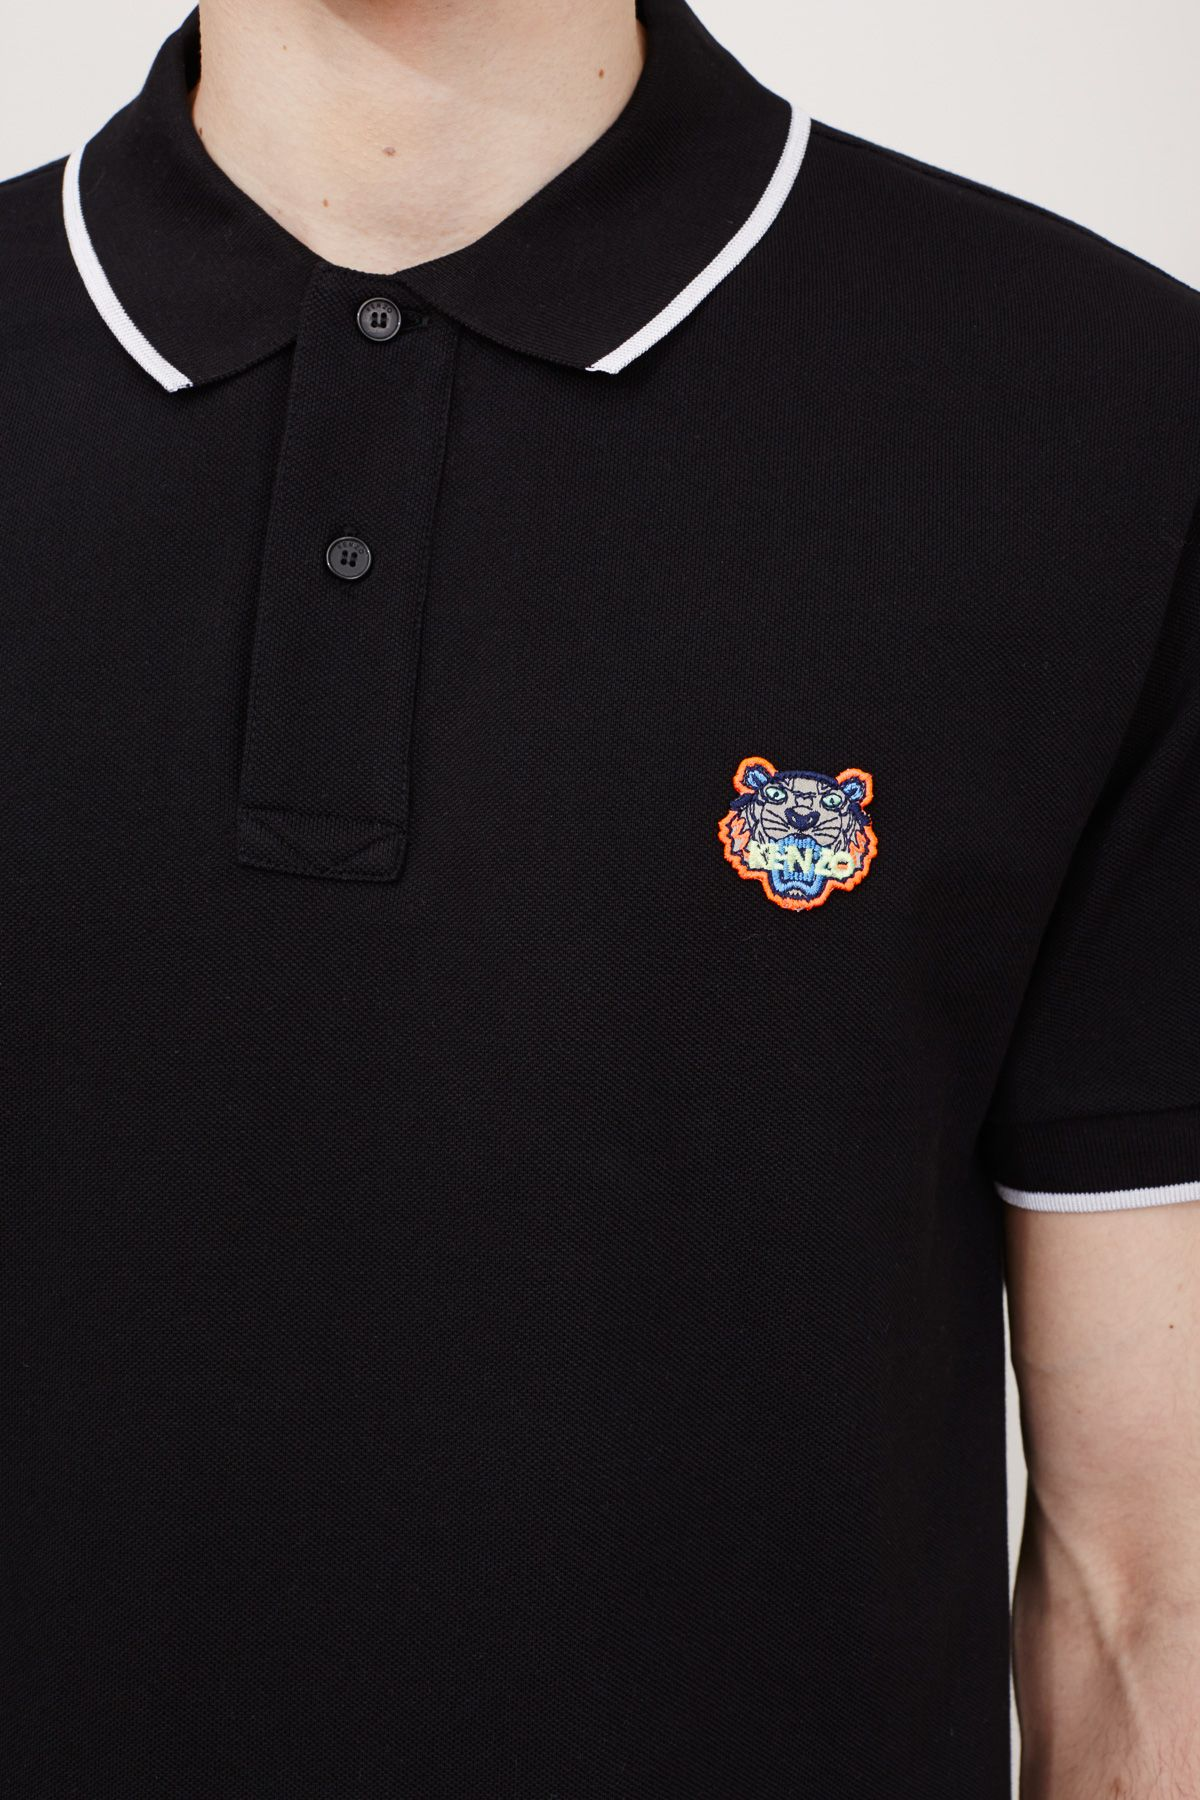 ad1a2a9692 Kenzo Polo | My Style | Mens tops, Polo, Men